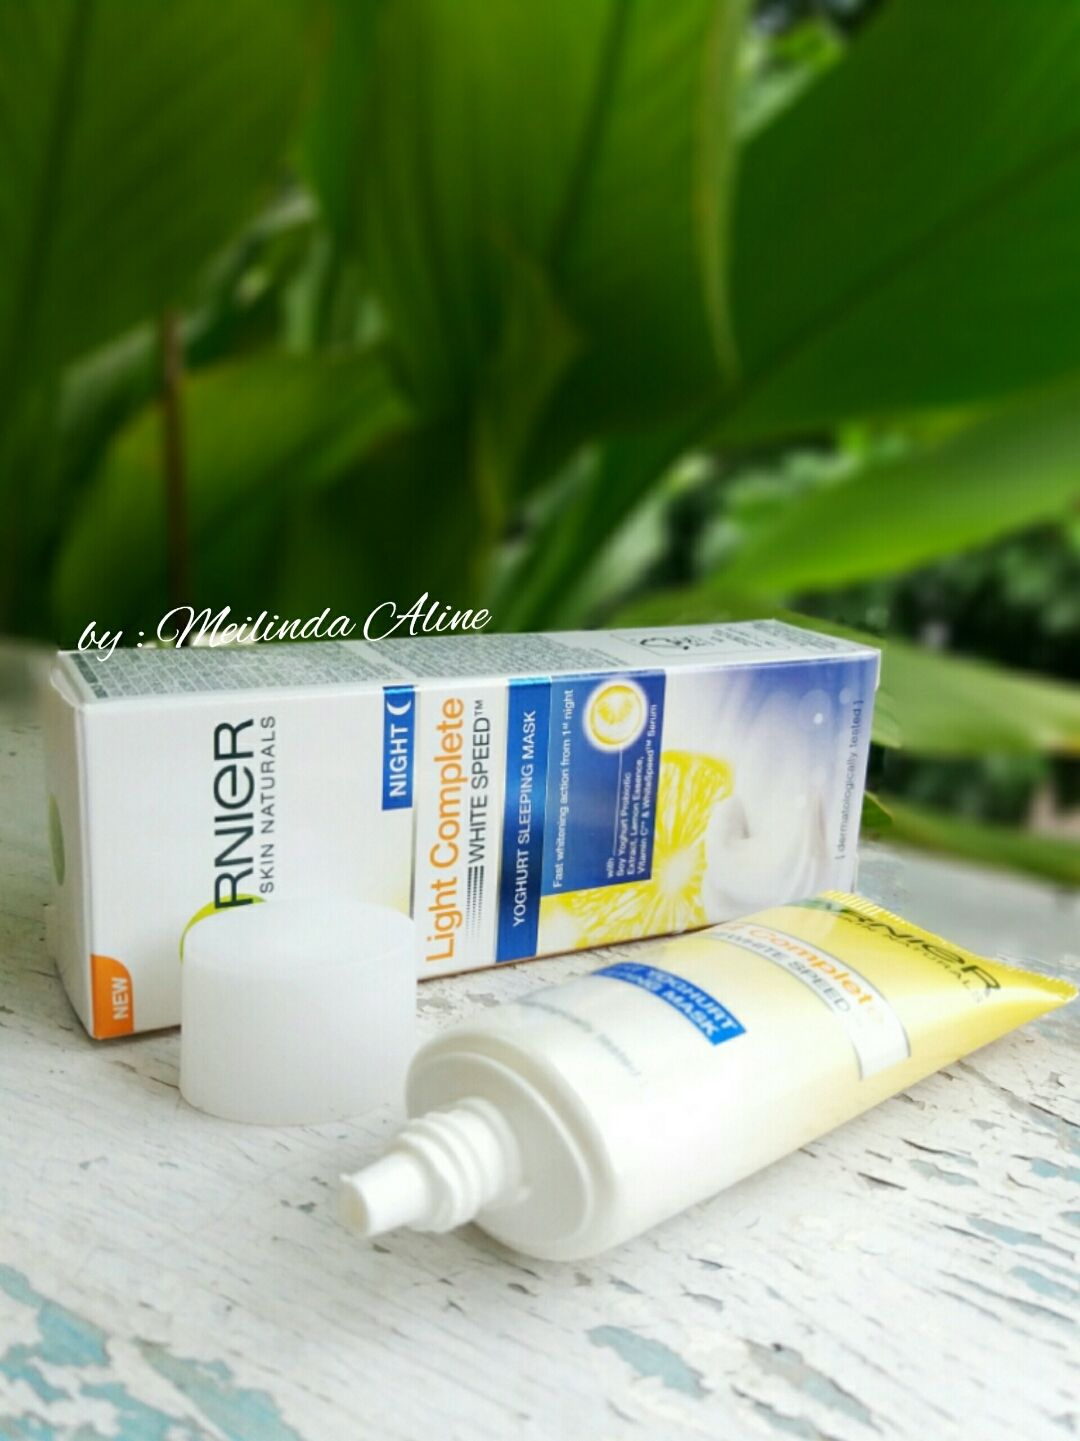 gambar review ke-4 untuk Garnier New Light Complete Yoghurt Sleeping Mask